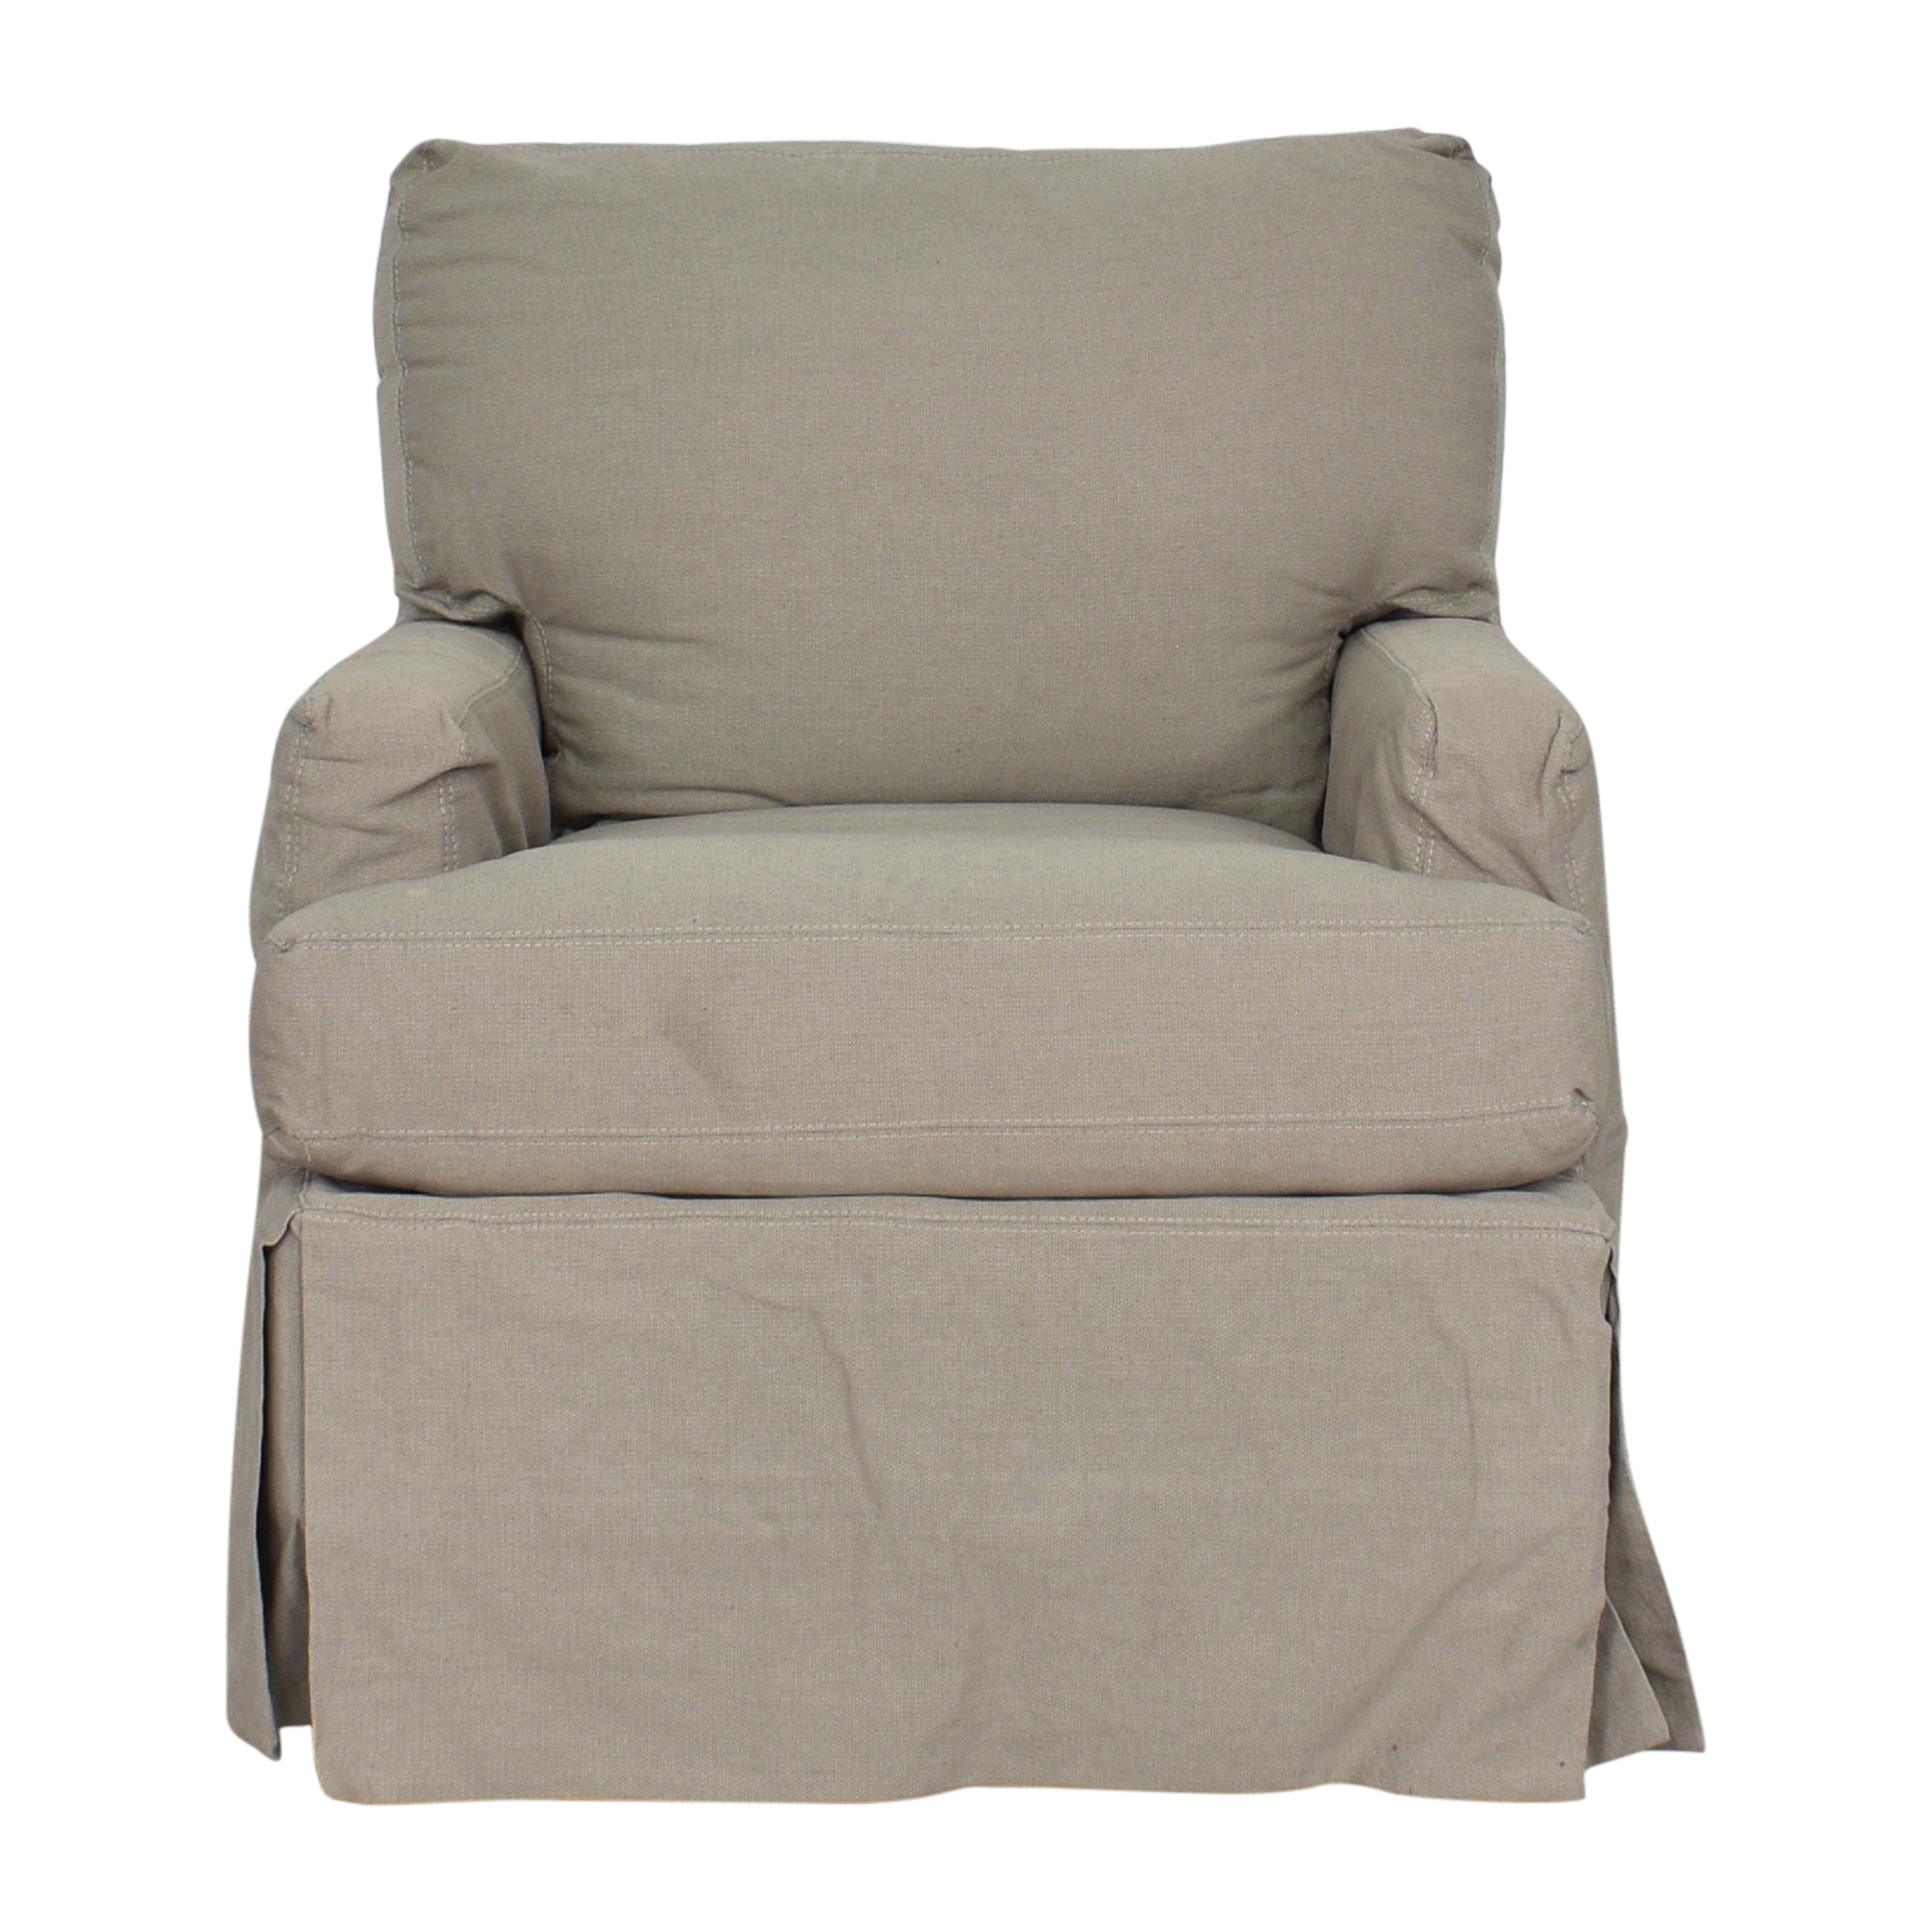 shop Crate & Barrel Hathaway Slipcovered Chair Crate & Barrel